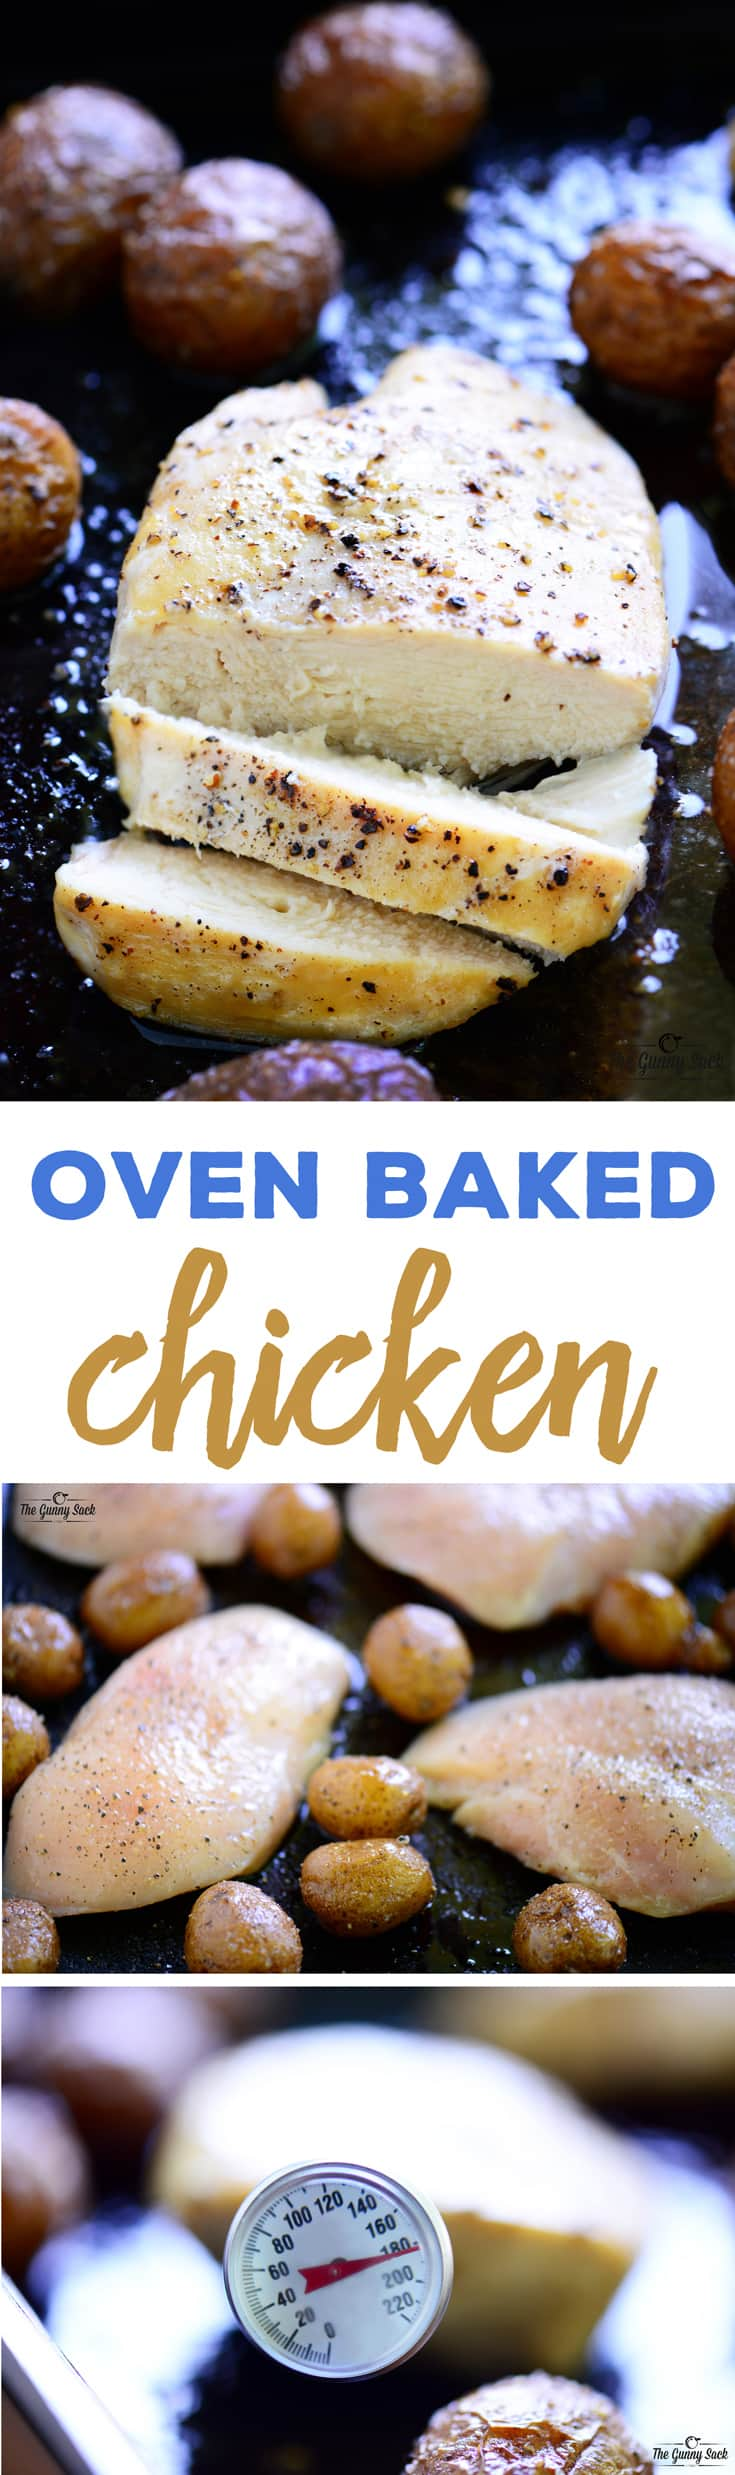 Oven Baked Chicken Recipe